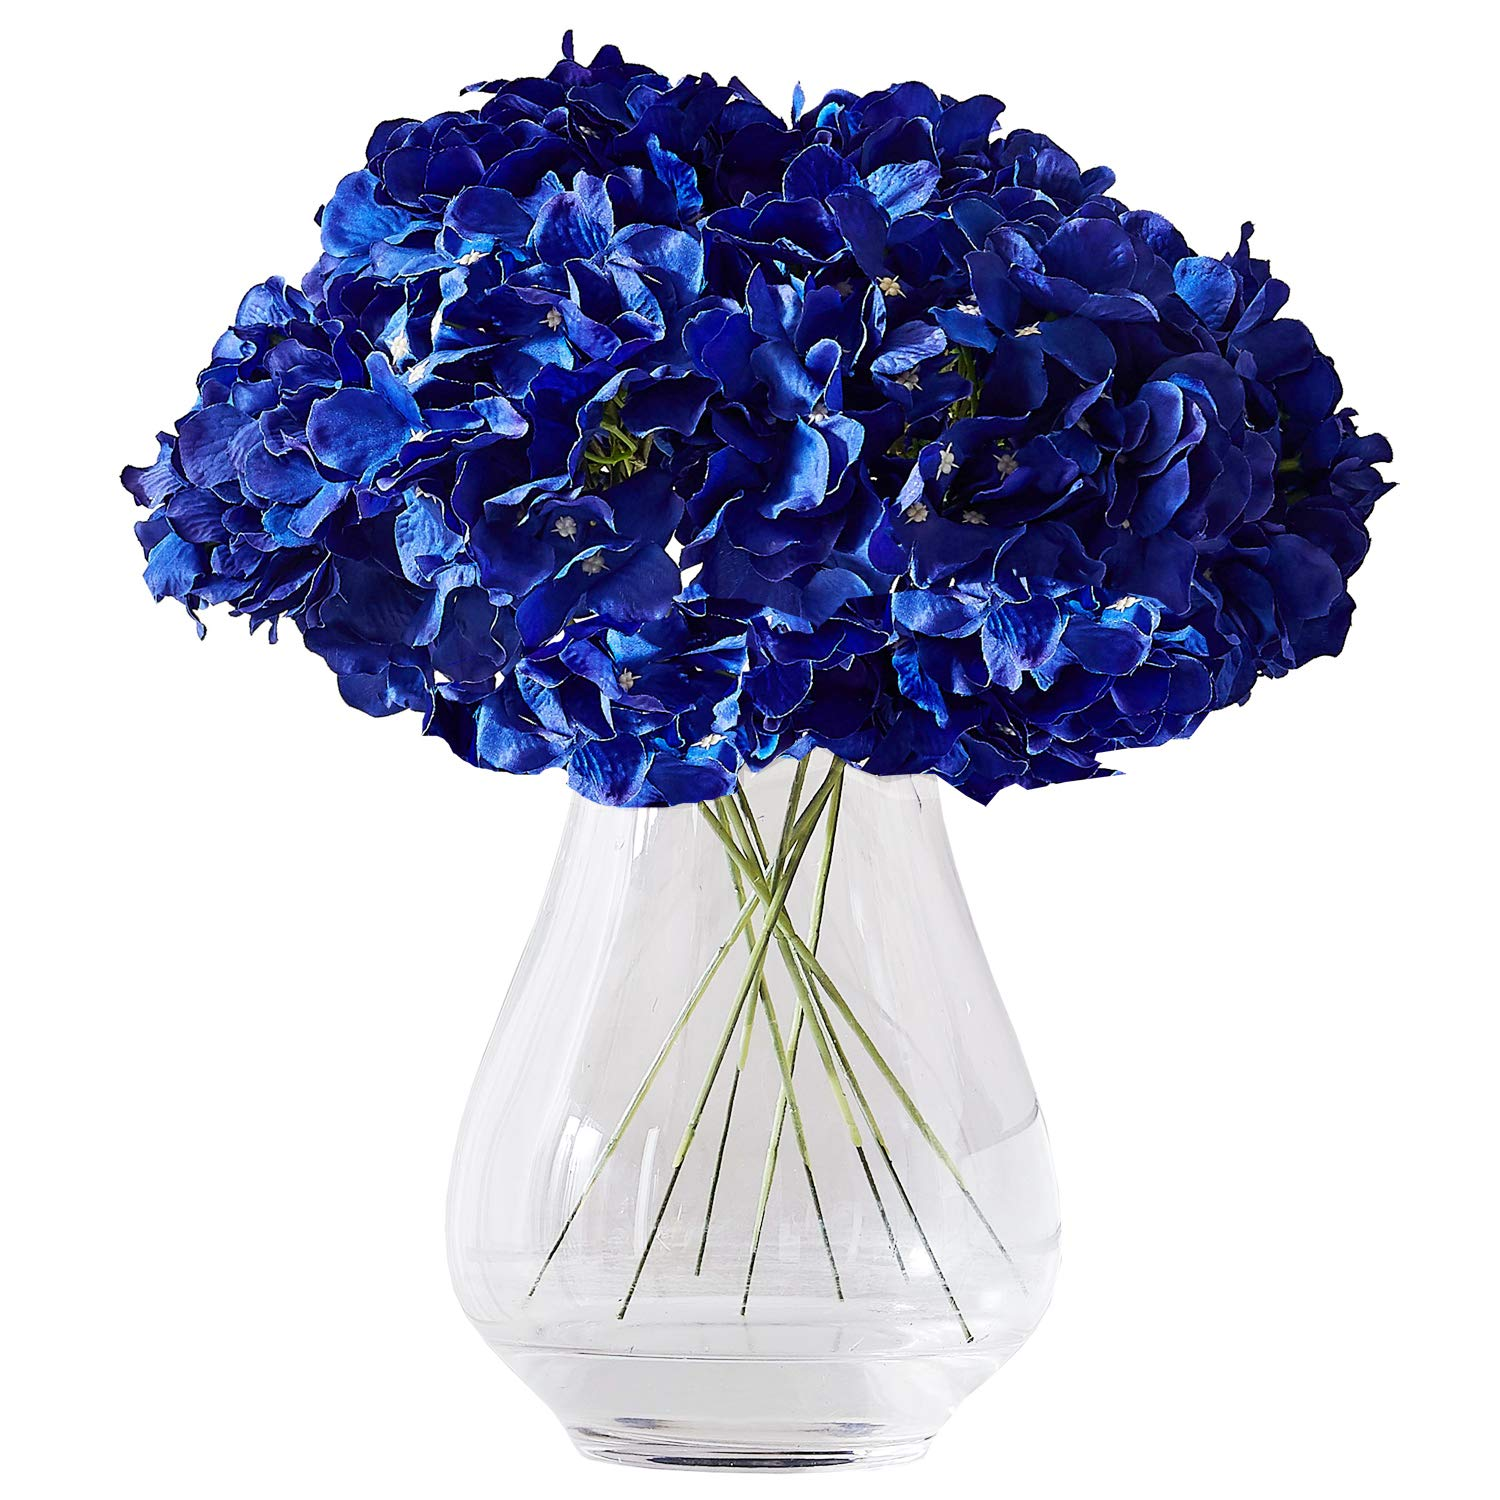 Kislohum Hydrangea Silk Flower Heads 10 Navy Blue Artificial Hydrangea Silk Flowers Head for Wedding Centerpieces Bouquets DIY Floral Decor Home Decoration with Long Stems